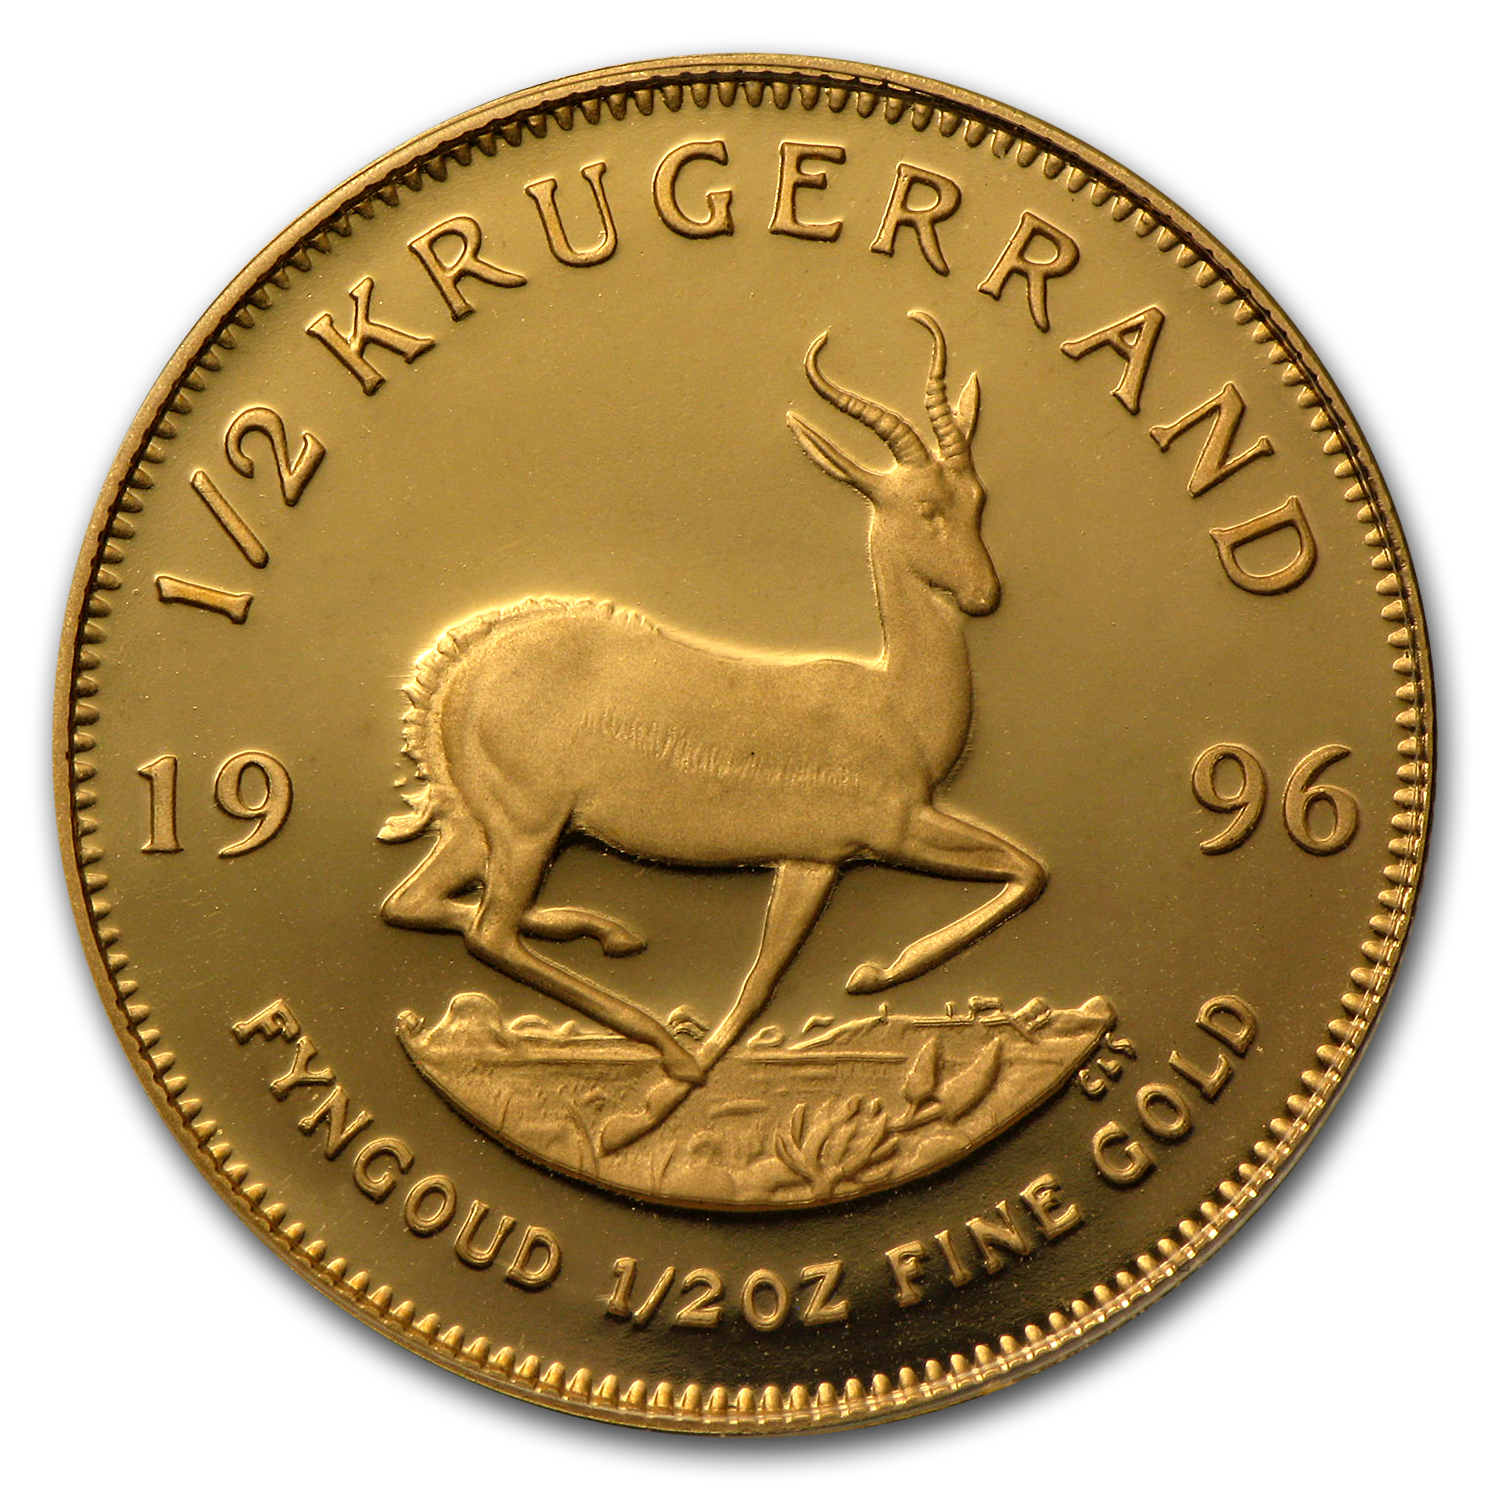 1996 1/2 oz Gold South African Krugerrand (Proof)